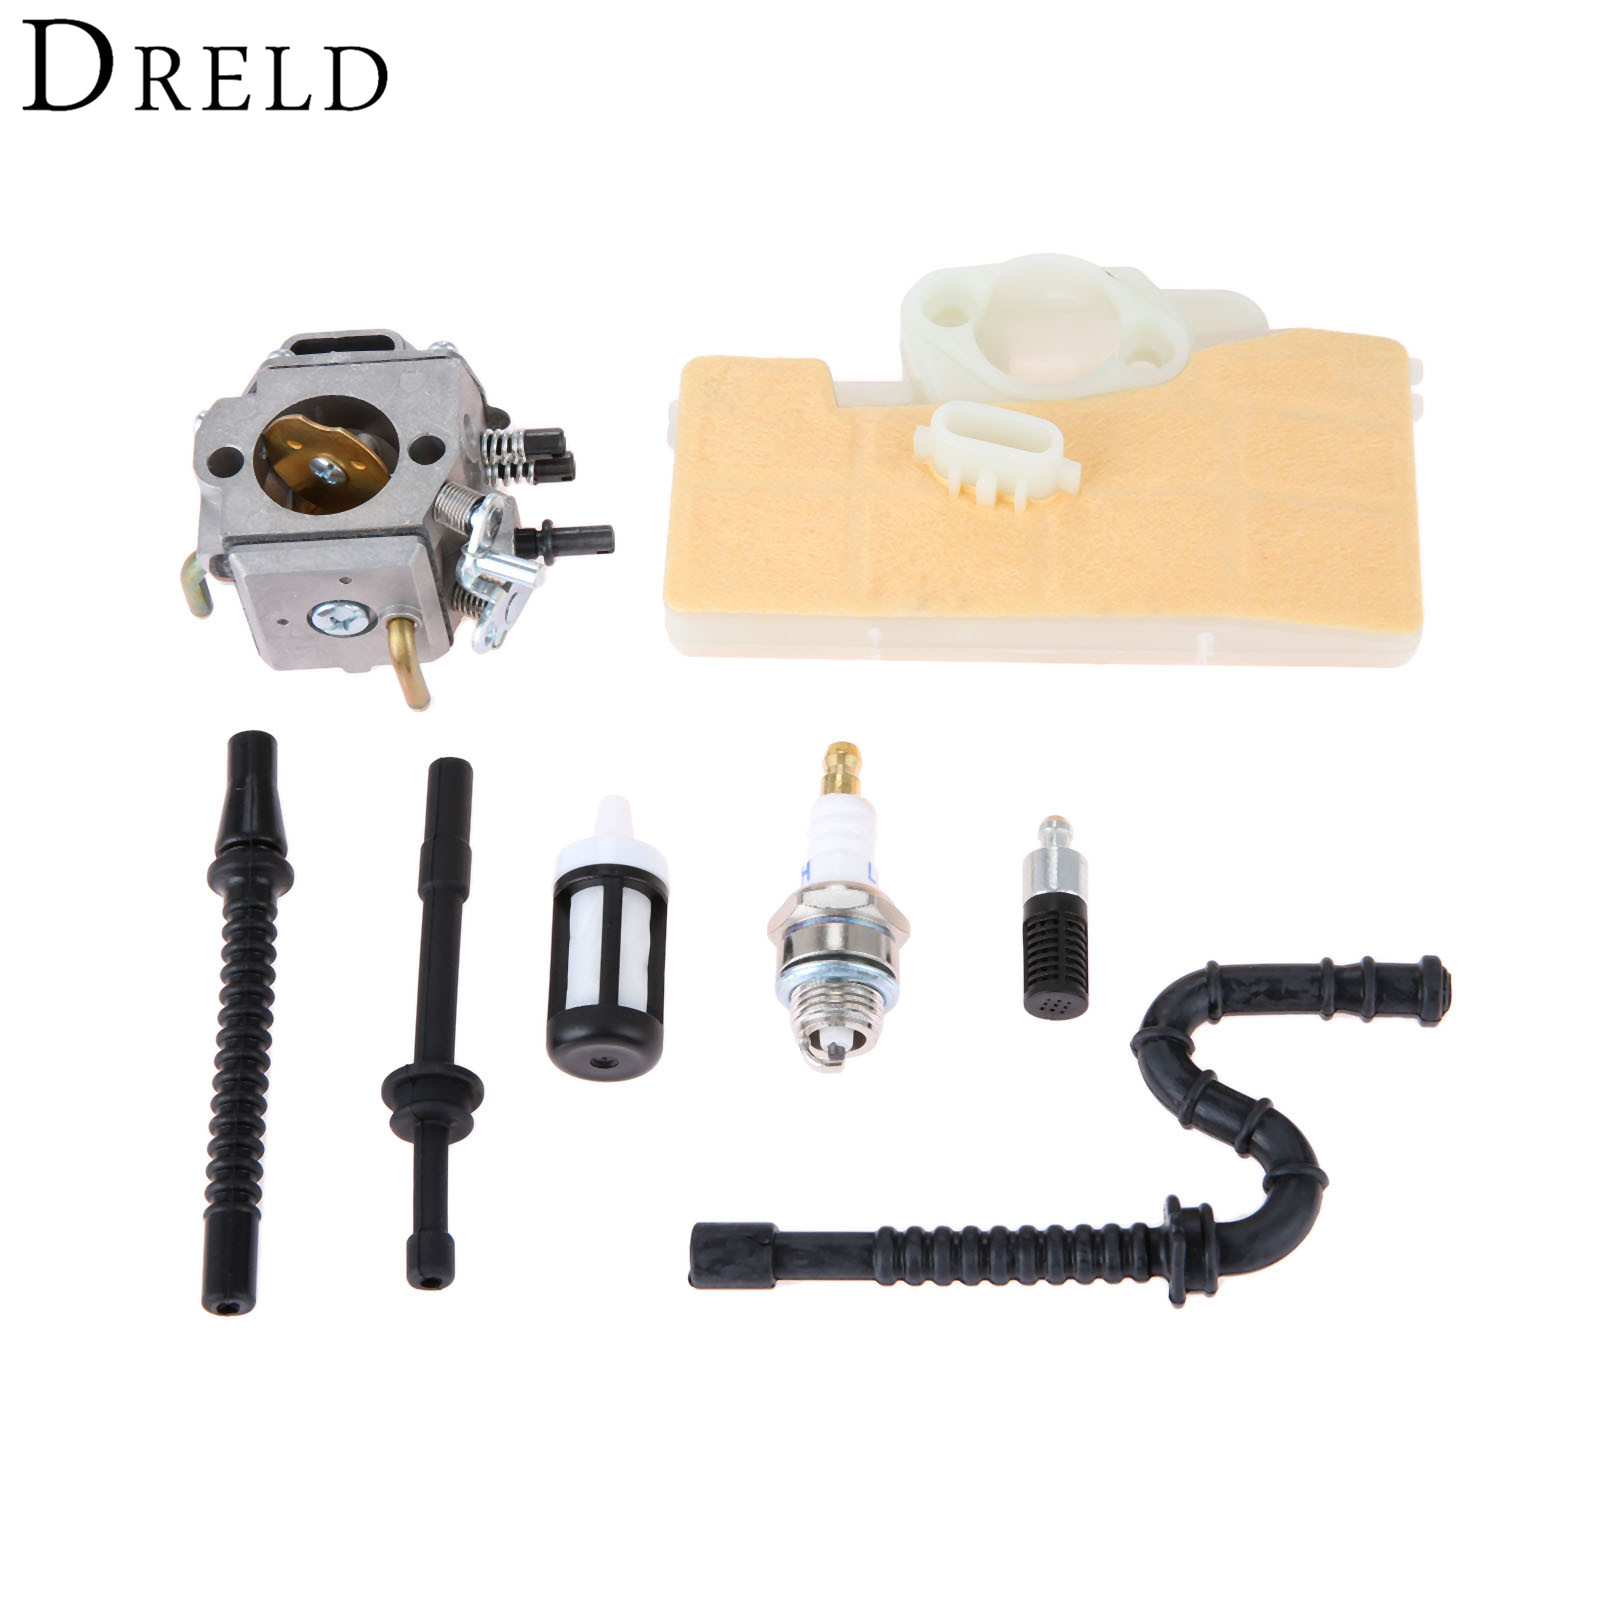 DRELD Carburetor Carb with Air Filter Fuel Line Spark Plug Repower Kit for STIHL MS290 MS310 MS390 029 039 Chainsaw Garden Tools